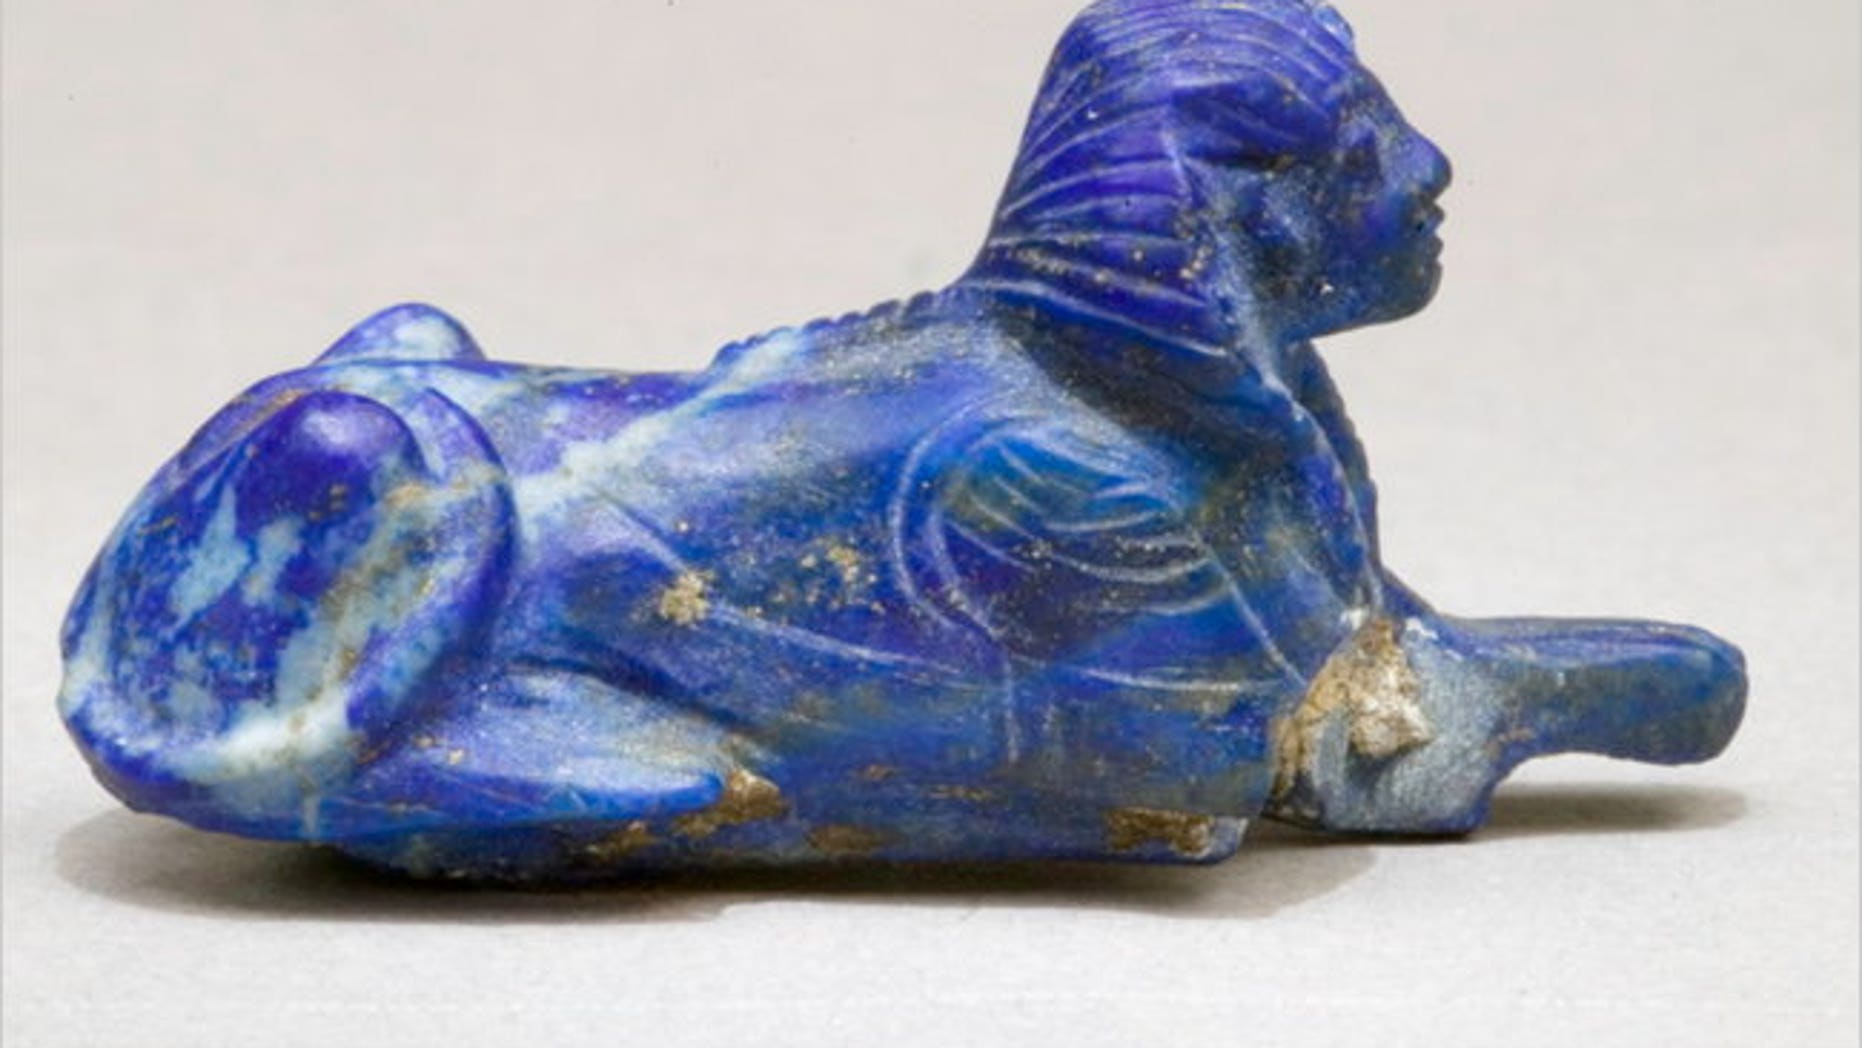 This lapis lazuli sphinx bracelet inlay, which has been in the collection of the Metropolitan Museum of Art for decades, will be returning to Egypt next year.